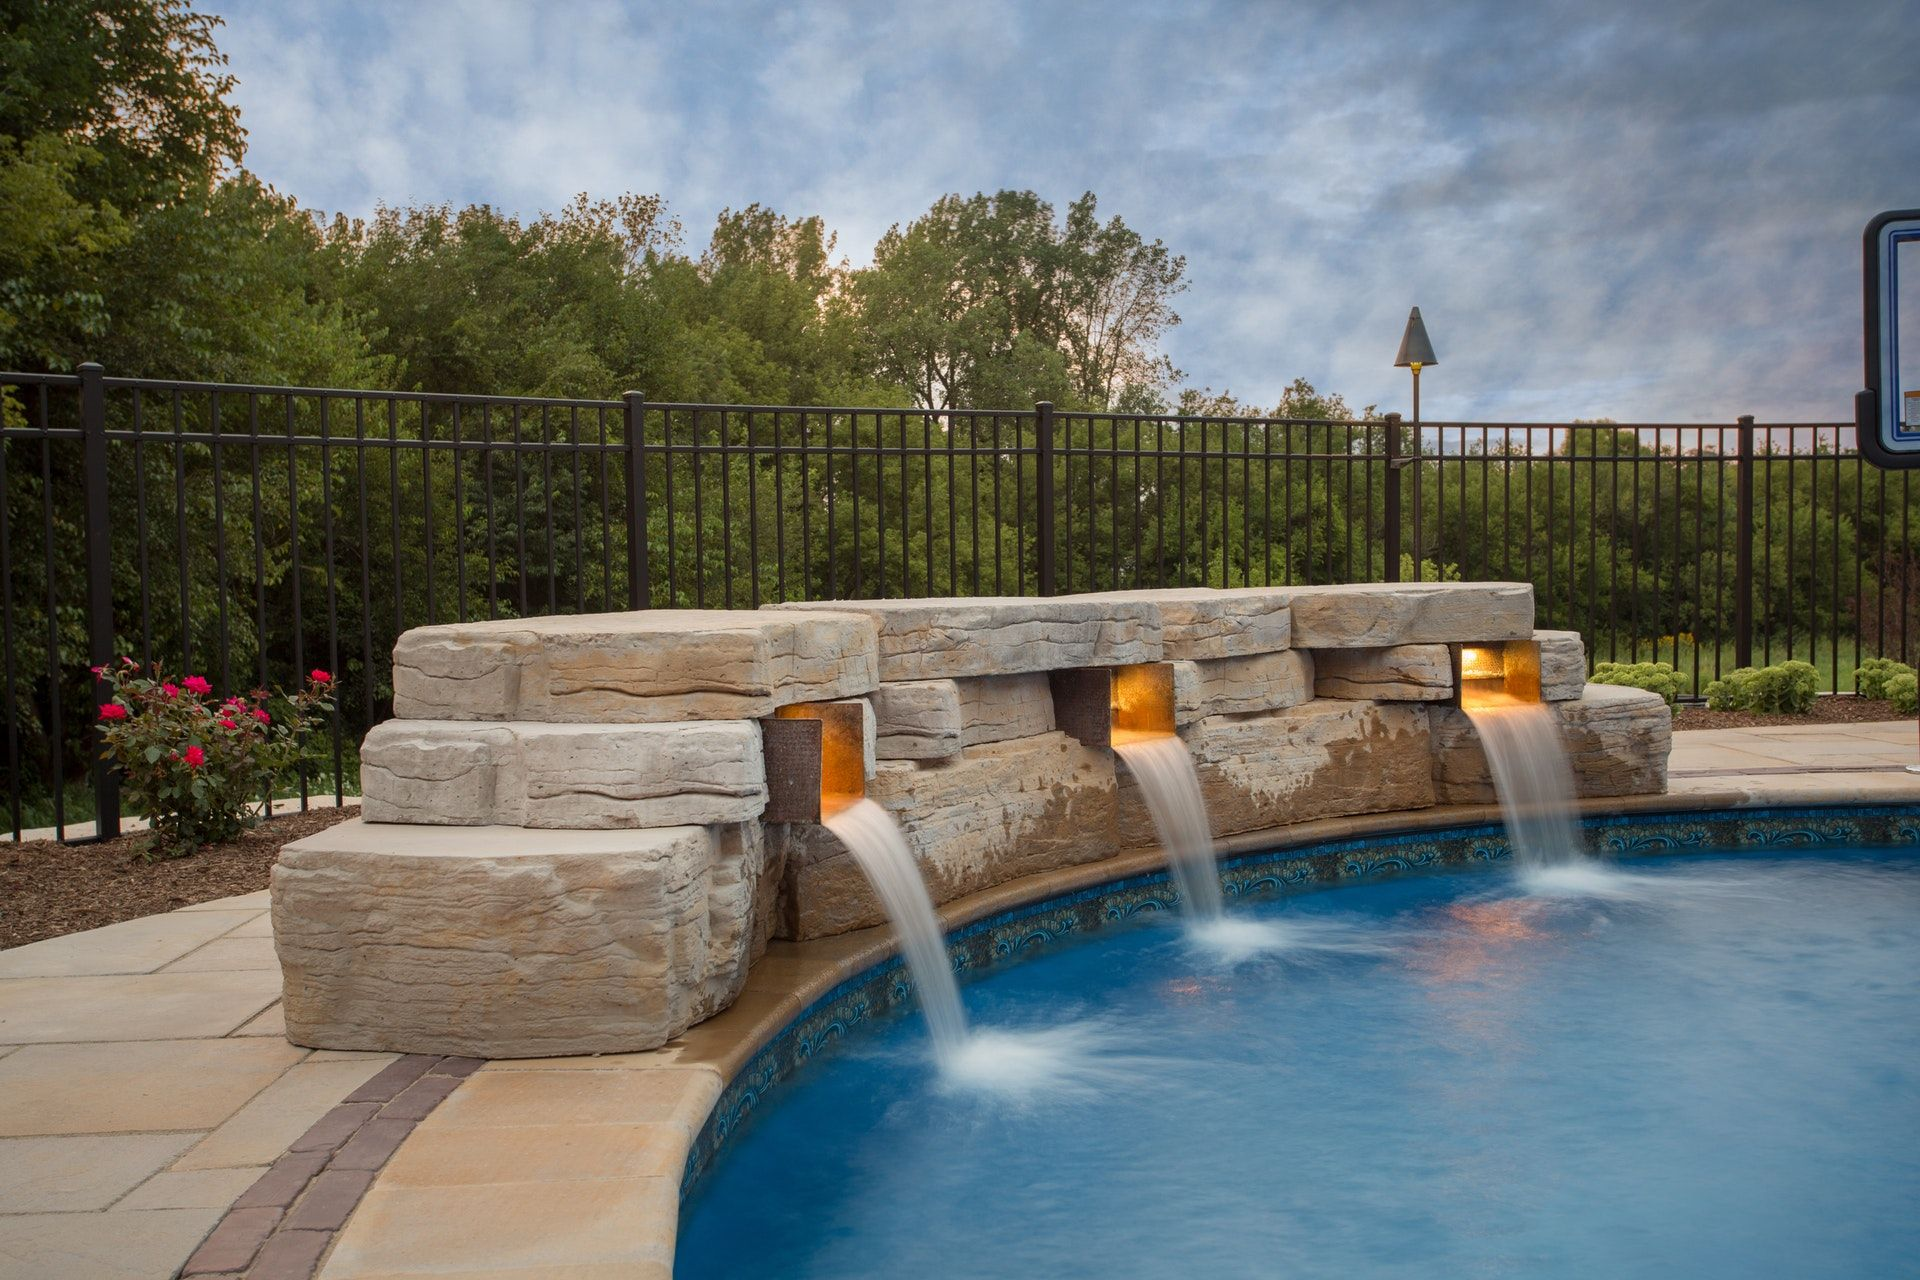 Landscaping Ideas With Outcropping Collection By Rosetta Hardscapes Outdoor Water Features Landscaping With Rocks Water Features